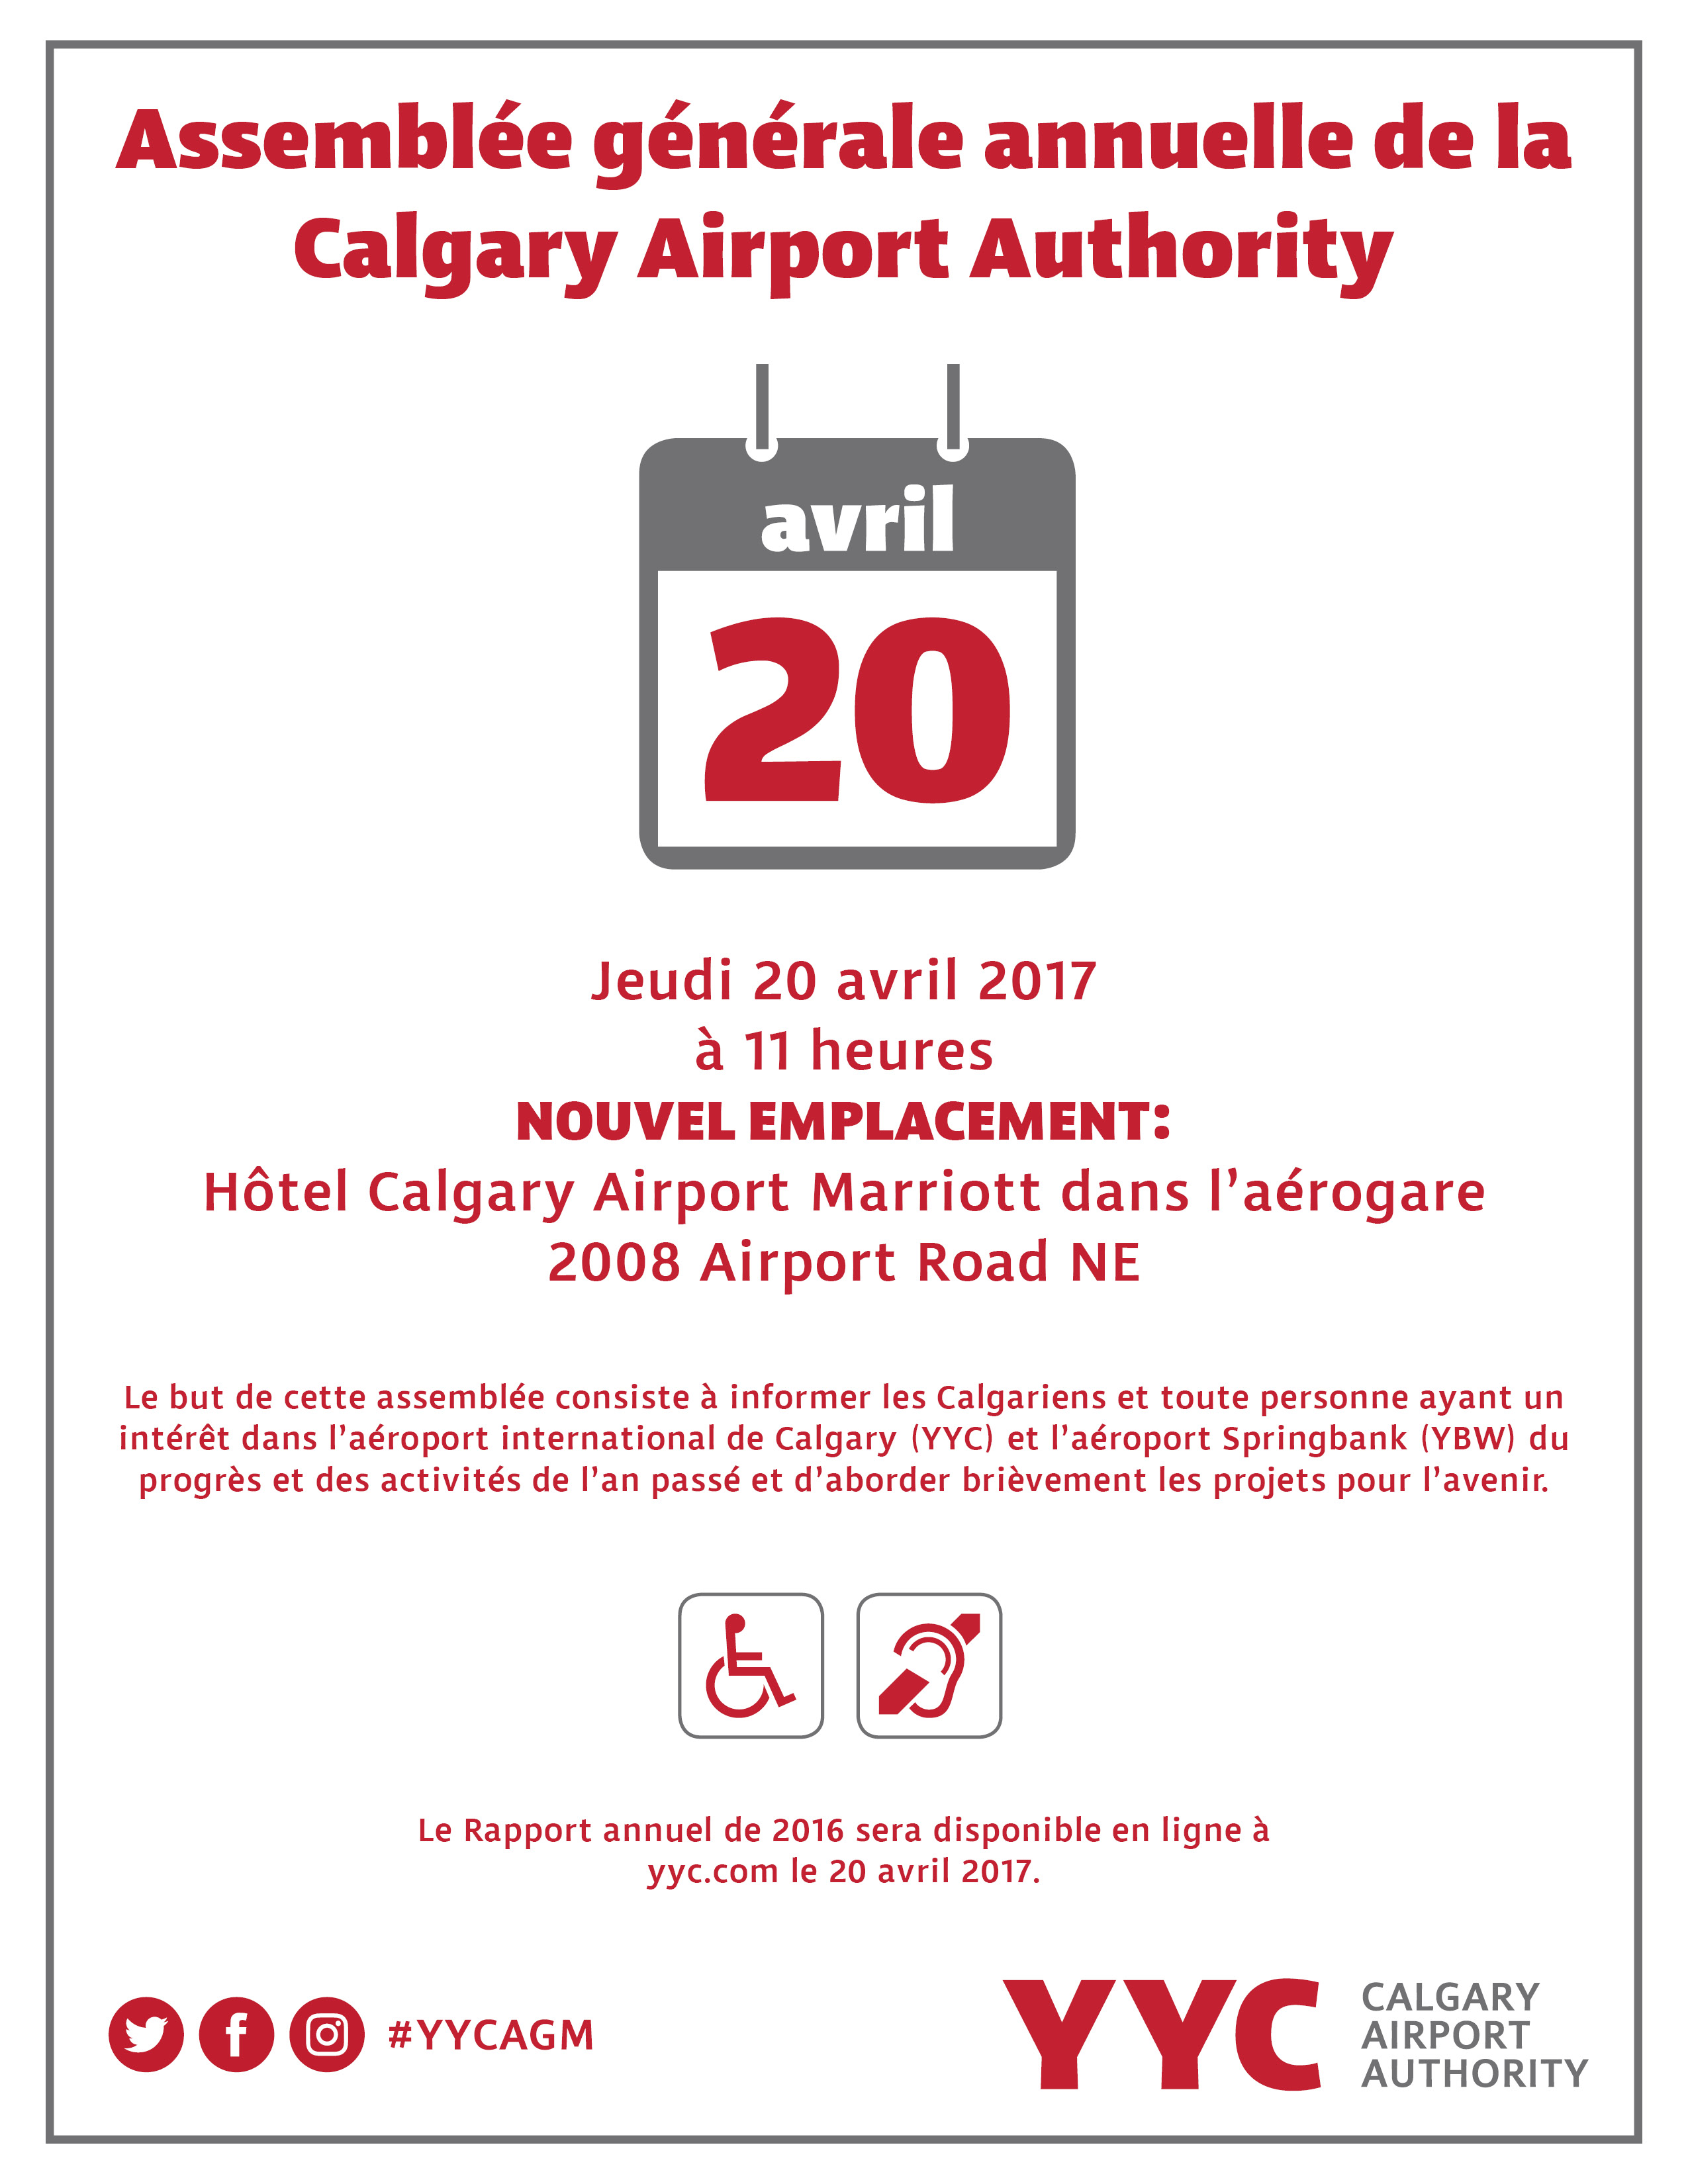 AGM  on April 20 at 11 am in Calgary Airport In-terminal Hotel